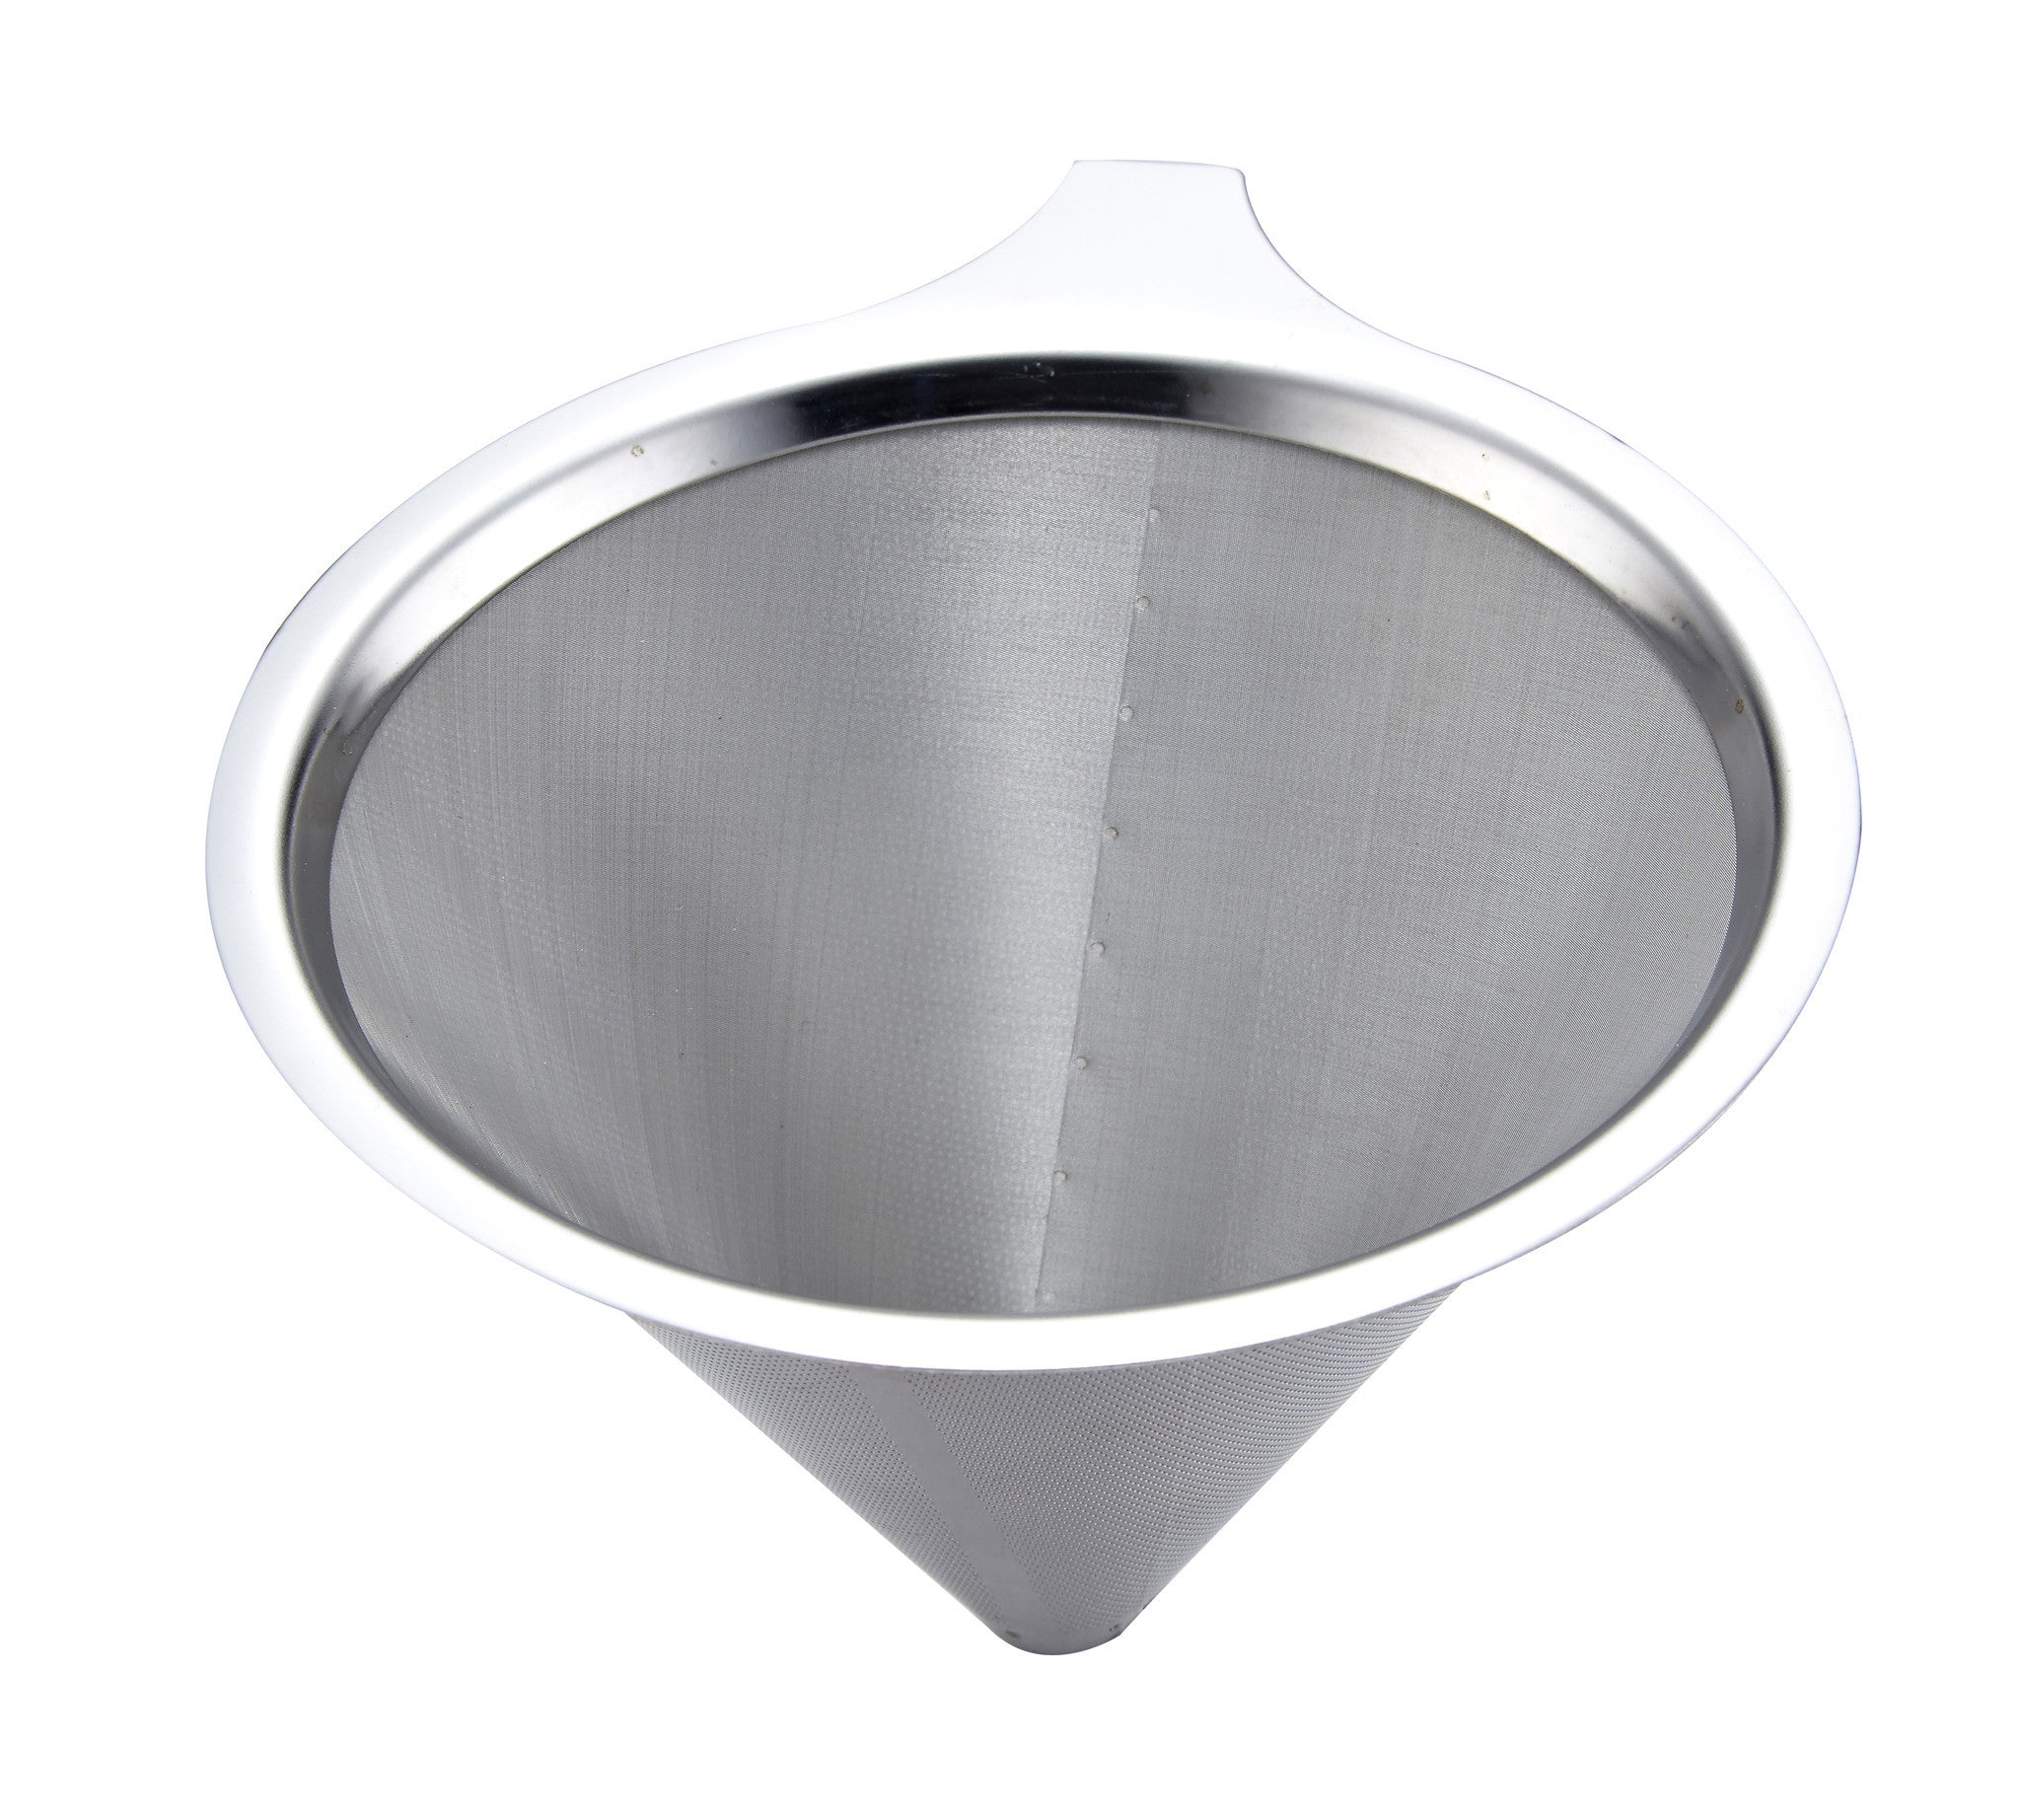 Pro Chef Kitchen Tools Stainless Steel Pour Over Coffee Maker - Reusab